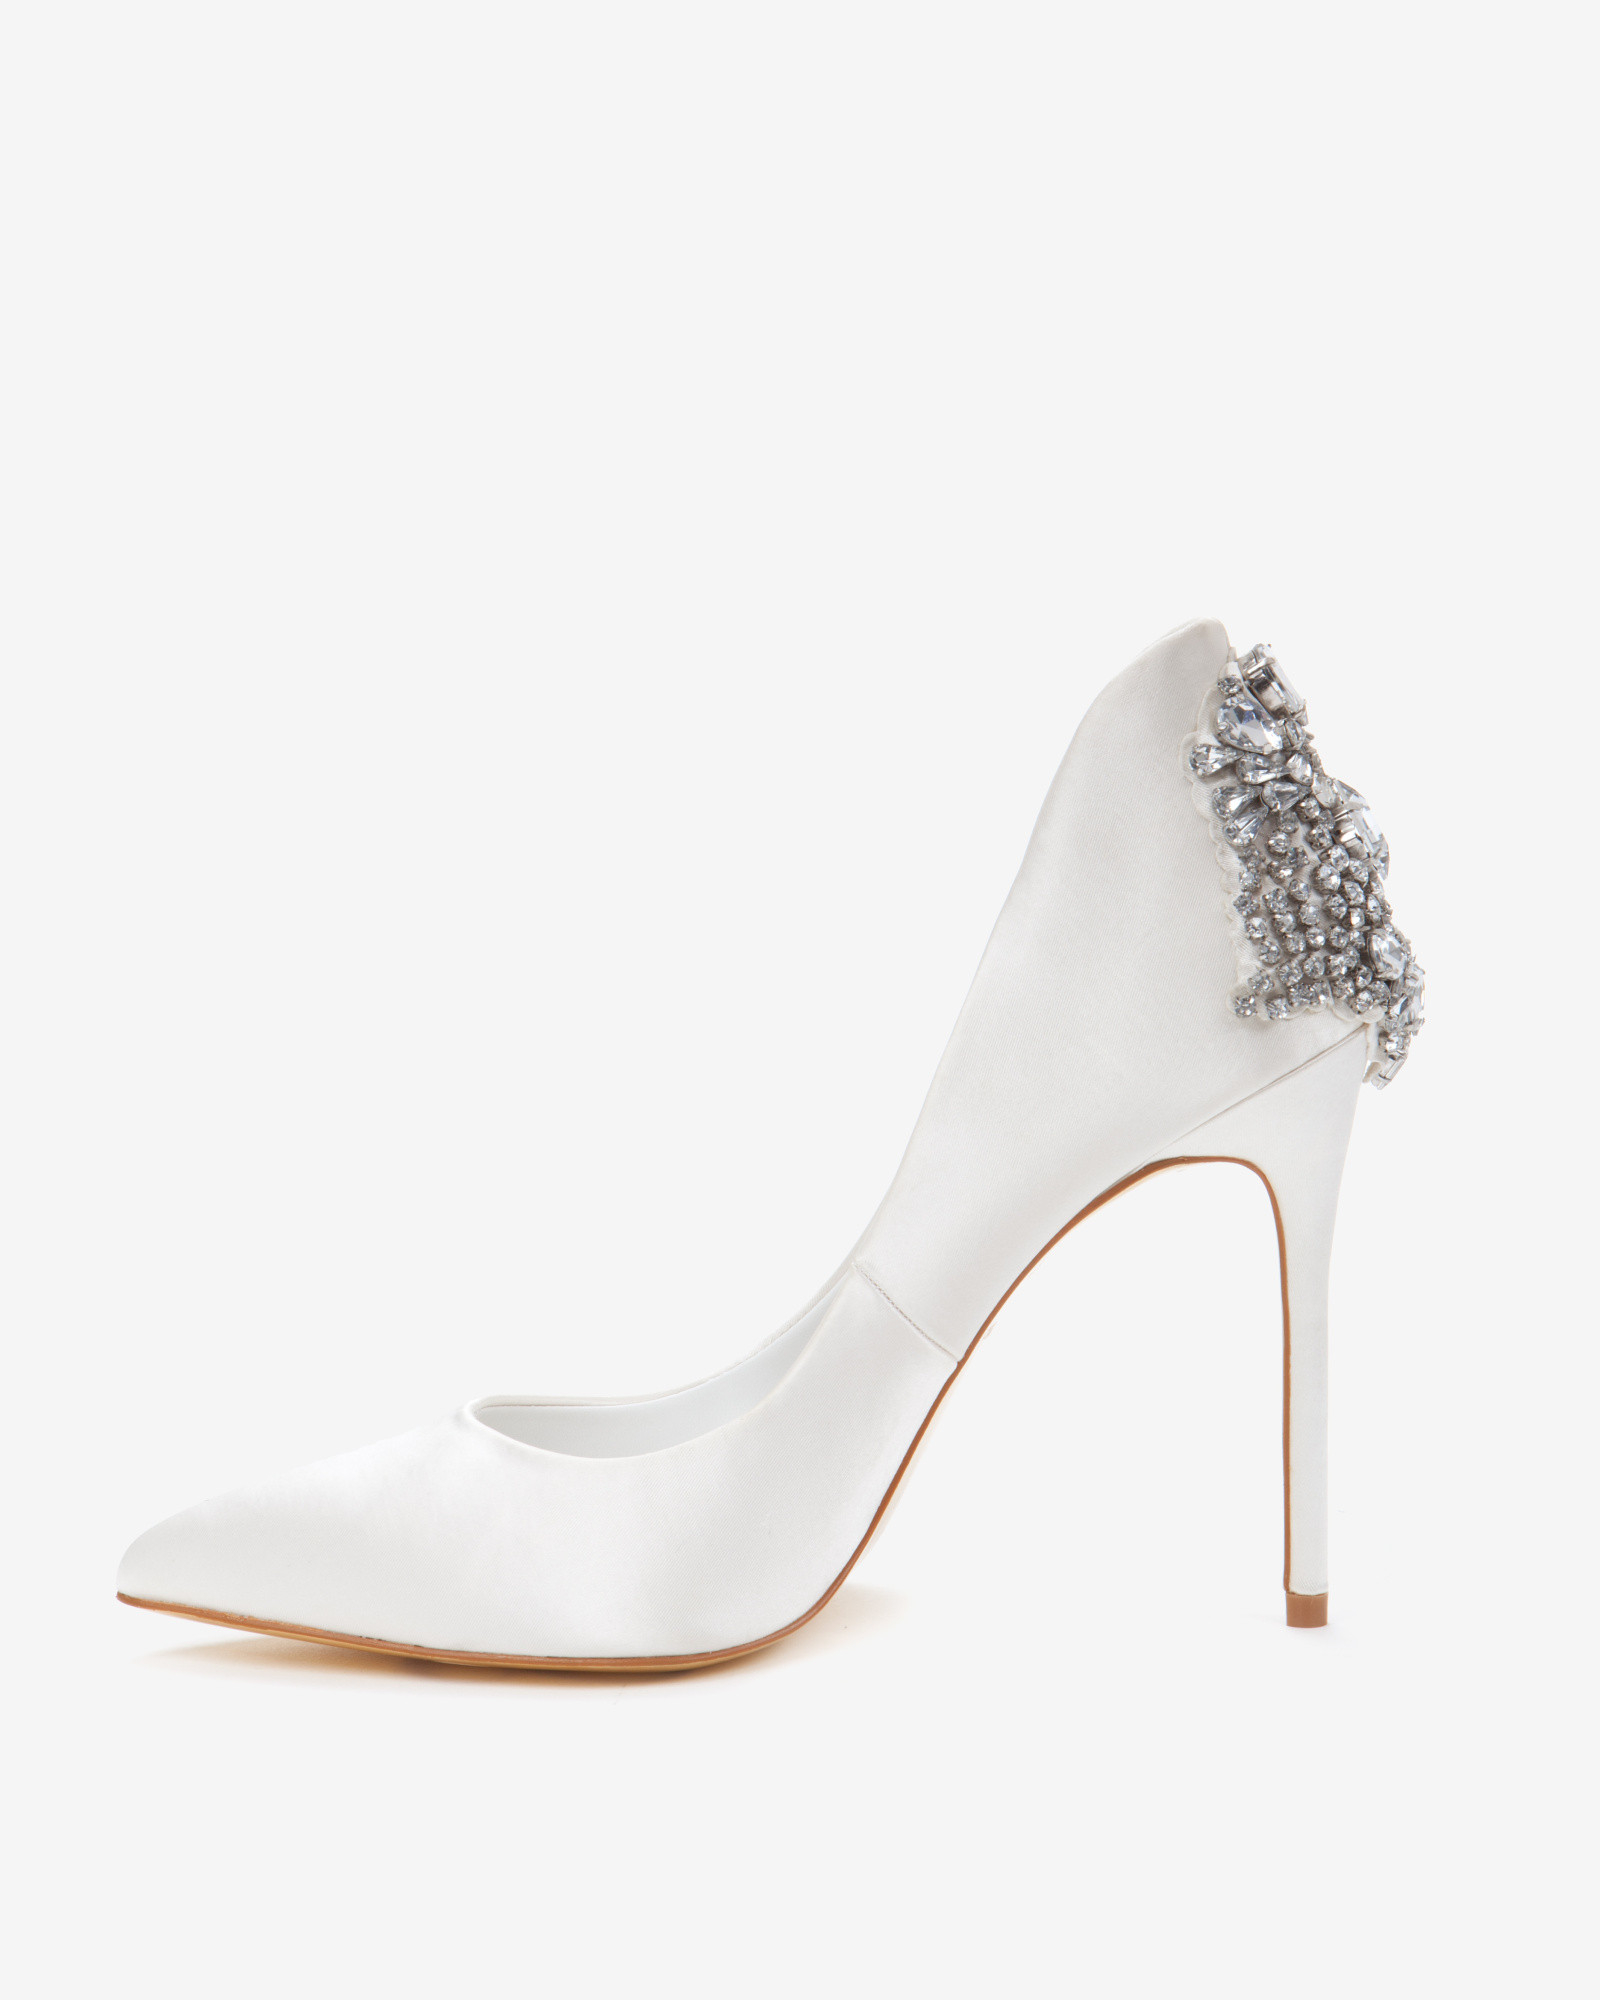 Off White Bridal Shoes Online